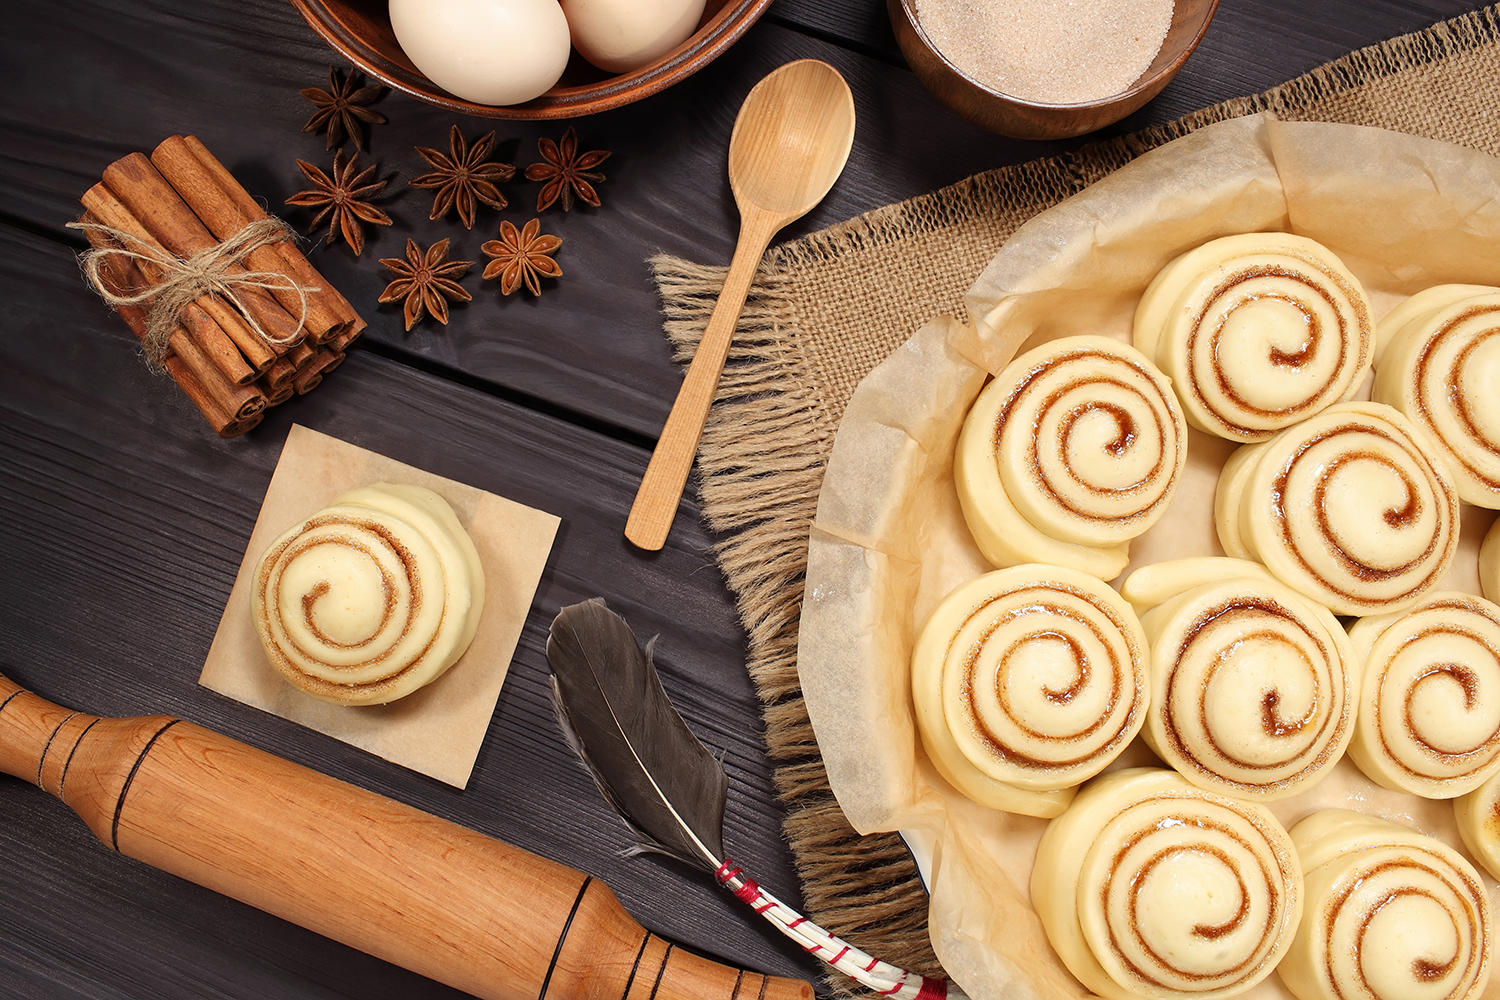 Set of 11 photos - raw buns: cinnamon rolls prepared for baking on a background of rustic table example image 14